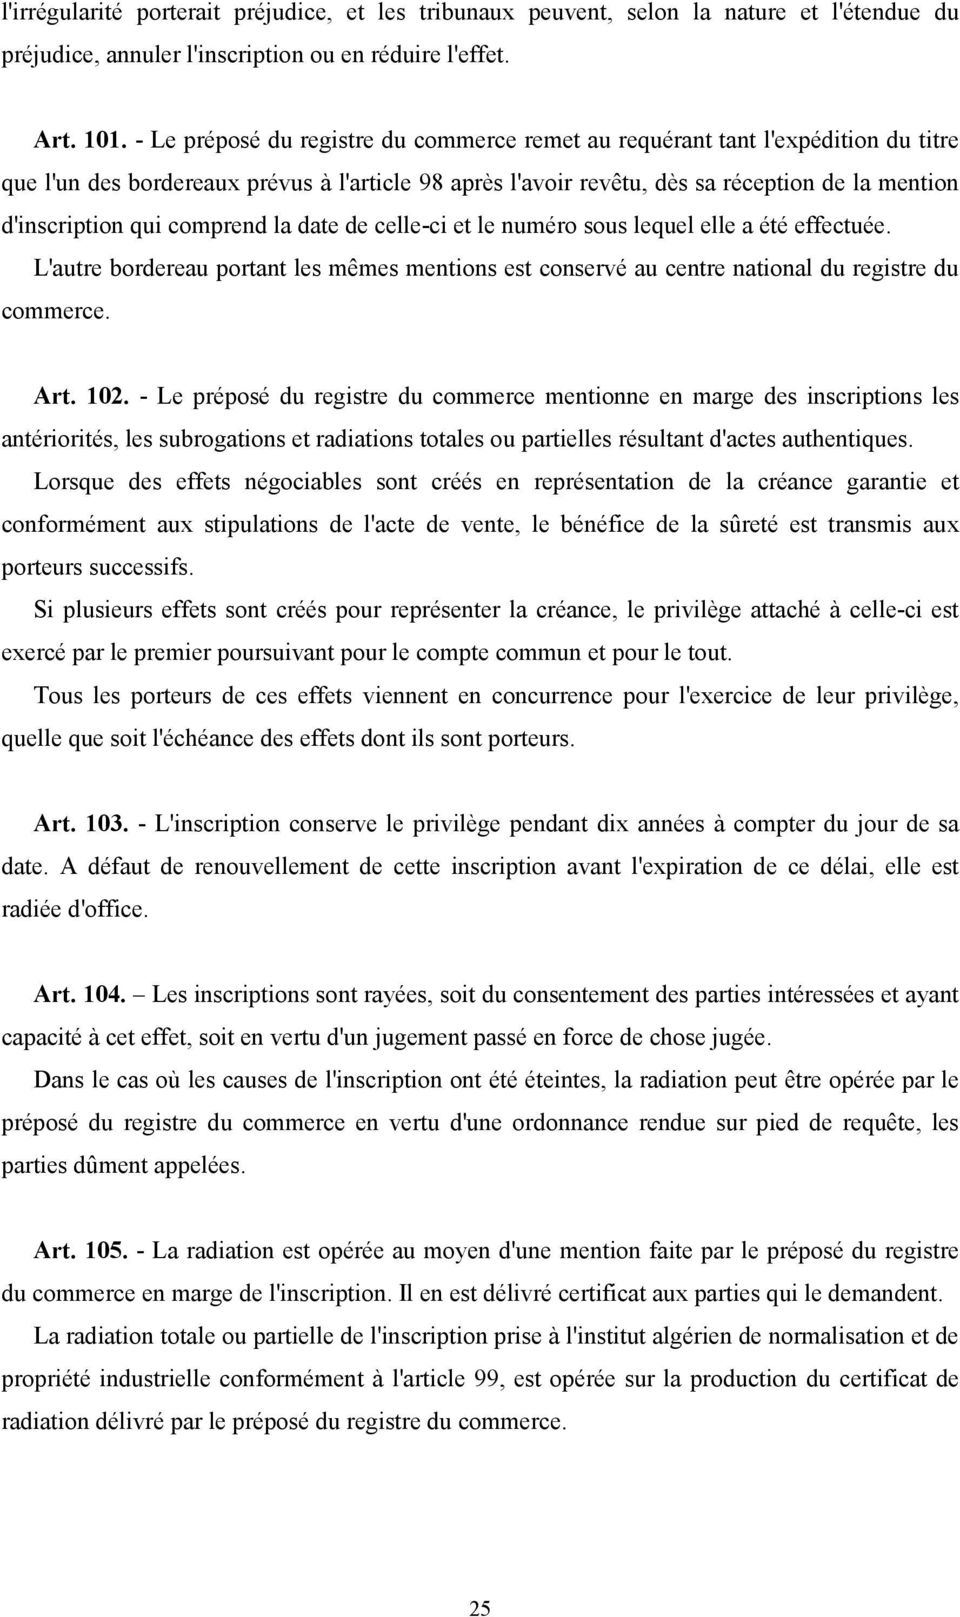 comprend la date de celle-ci et le numéro sous lequel elle a été effectuée. L'autre bordereau portant les mêmes mentions est conservé au centre national du registre du commerce. Art. 102.